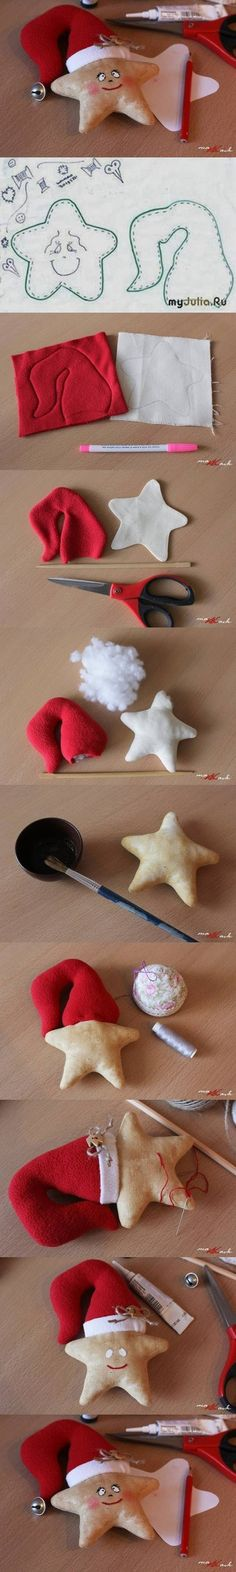 DIY Beautiful Star Christmas Ornament DIY Beautiful Star Christmas Ornament by diyforever